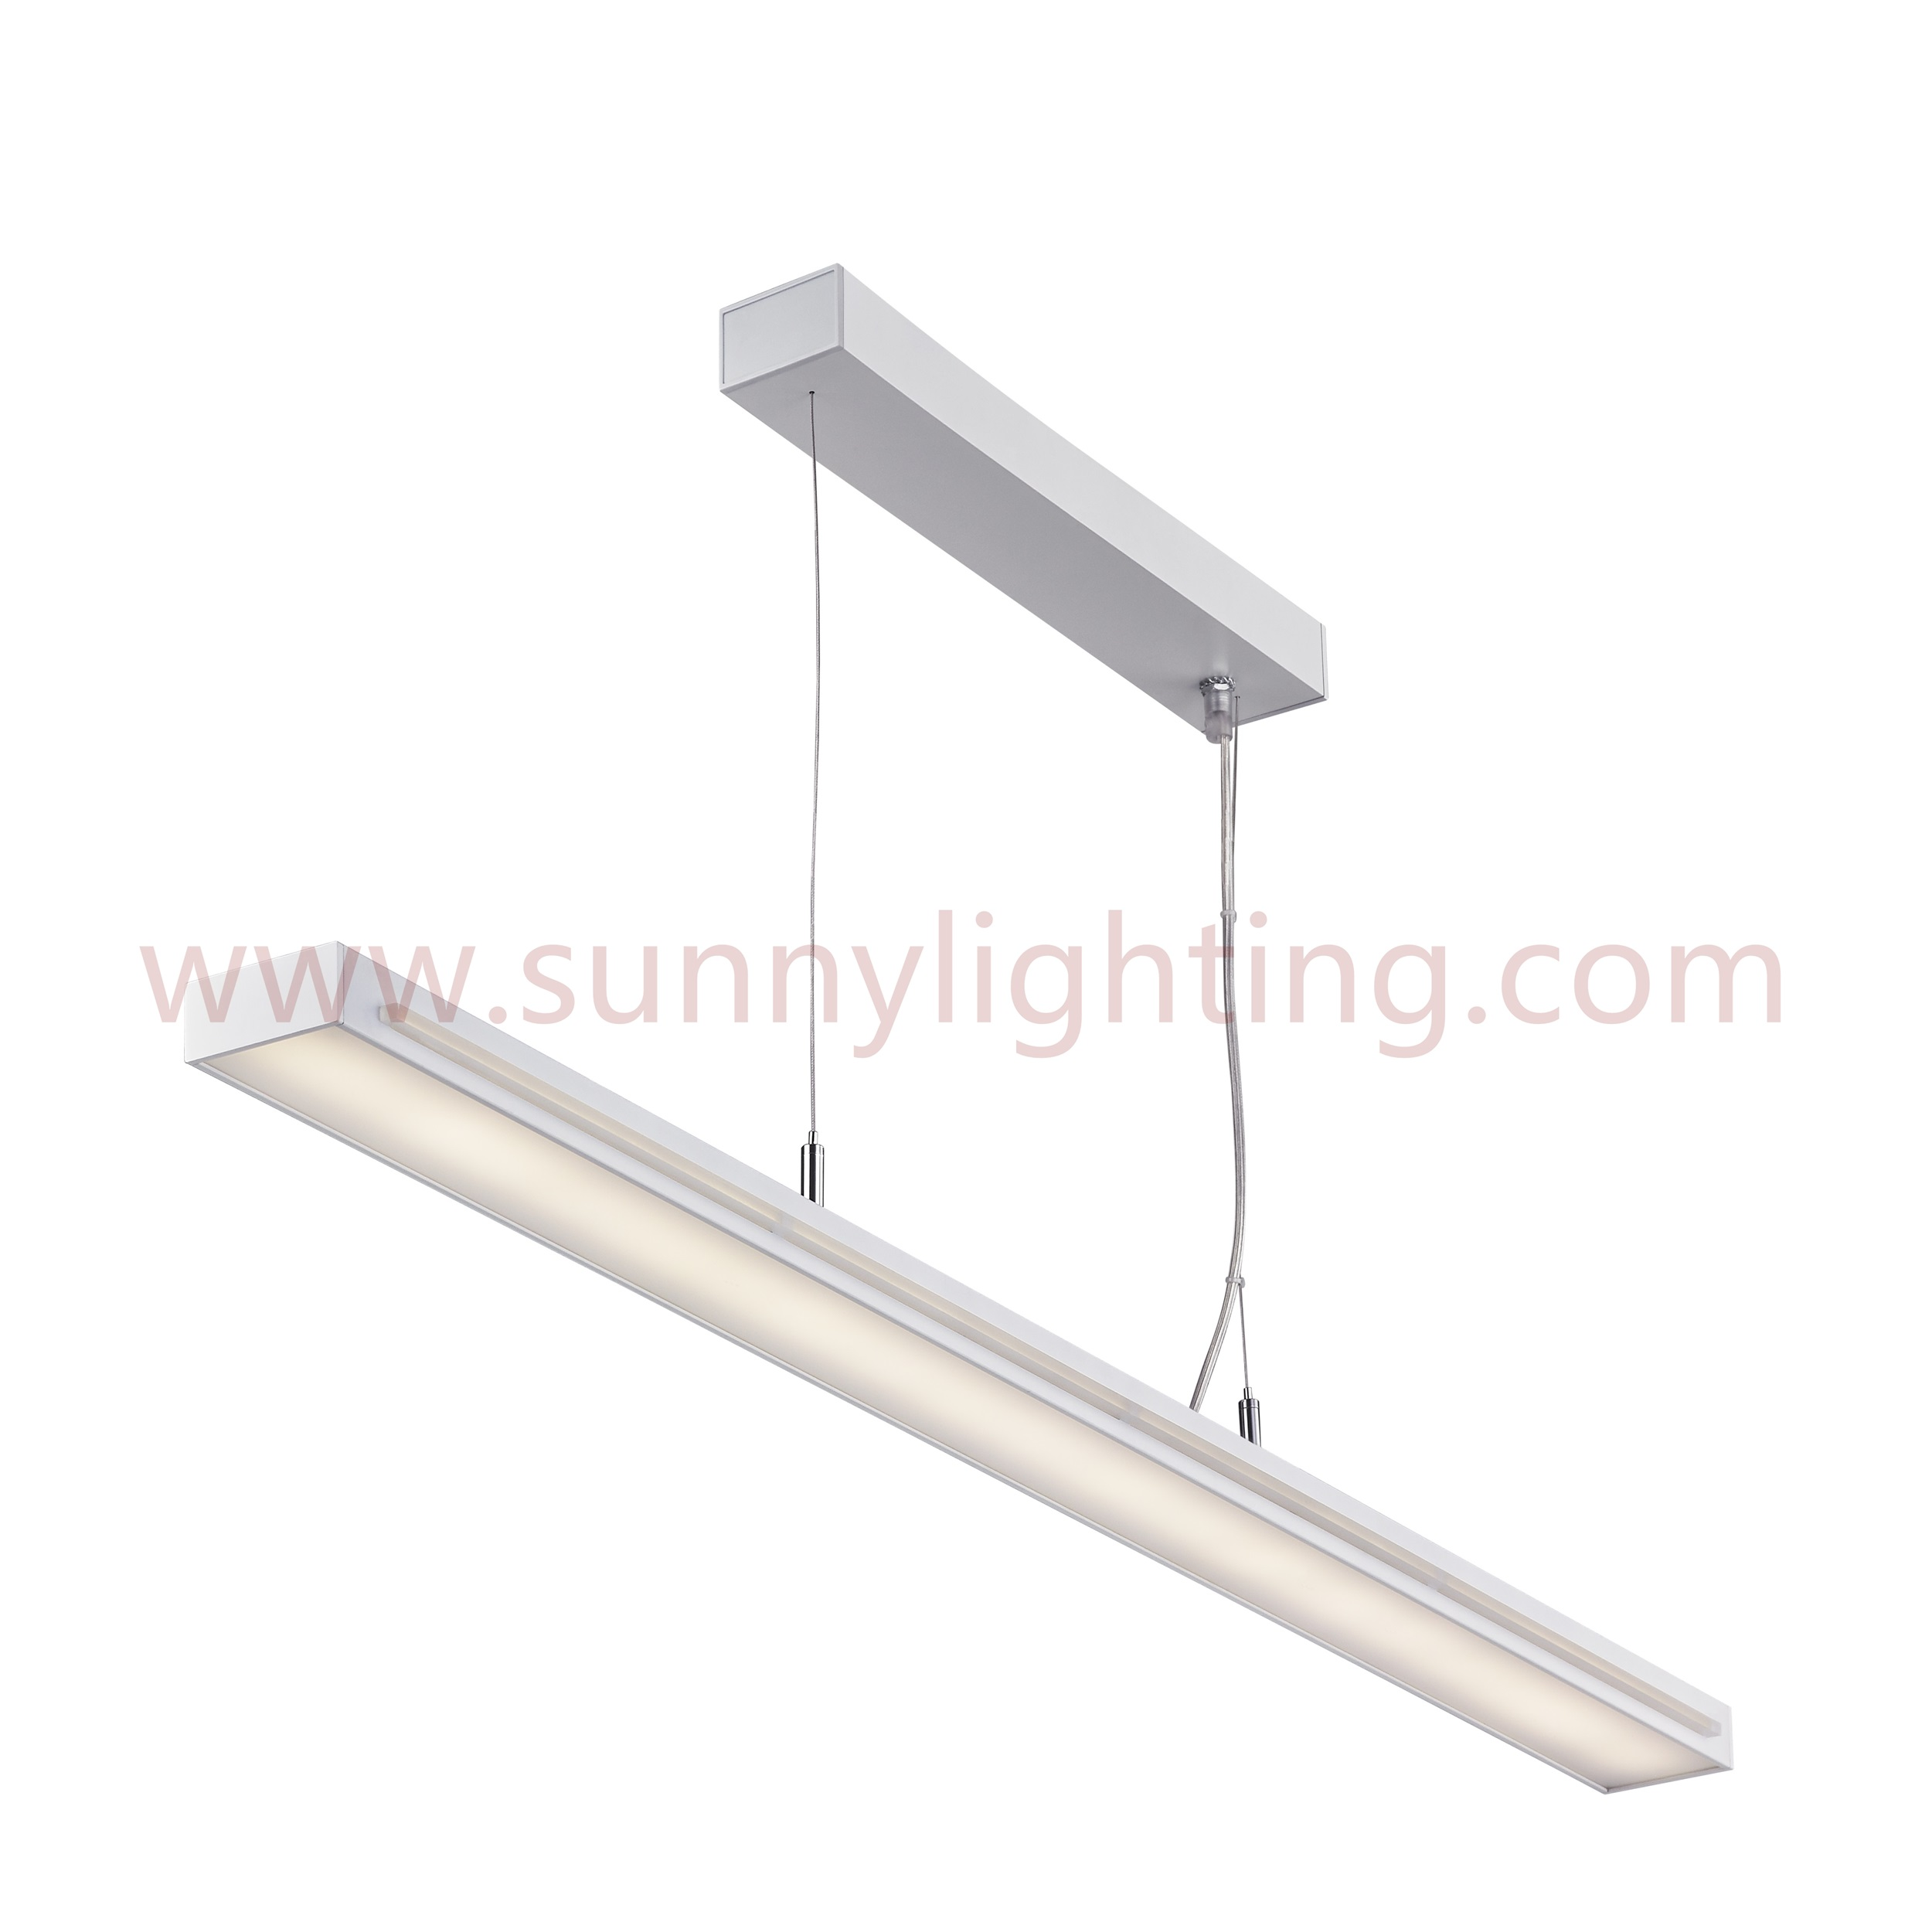 LED Linear Light 21.6/28.8W/36W LED-063B